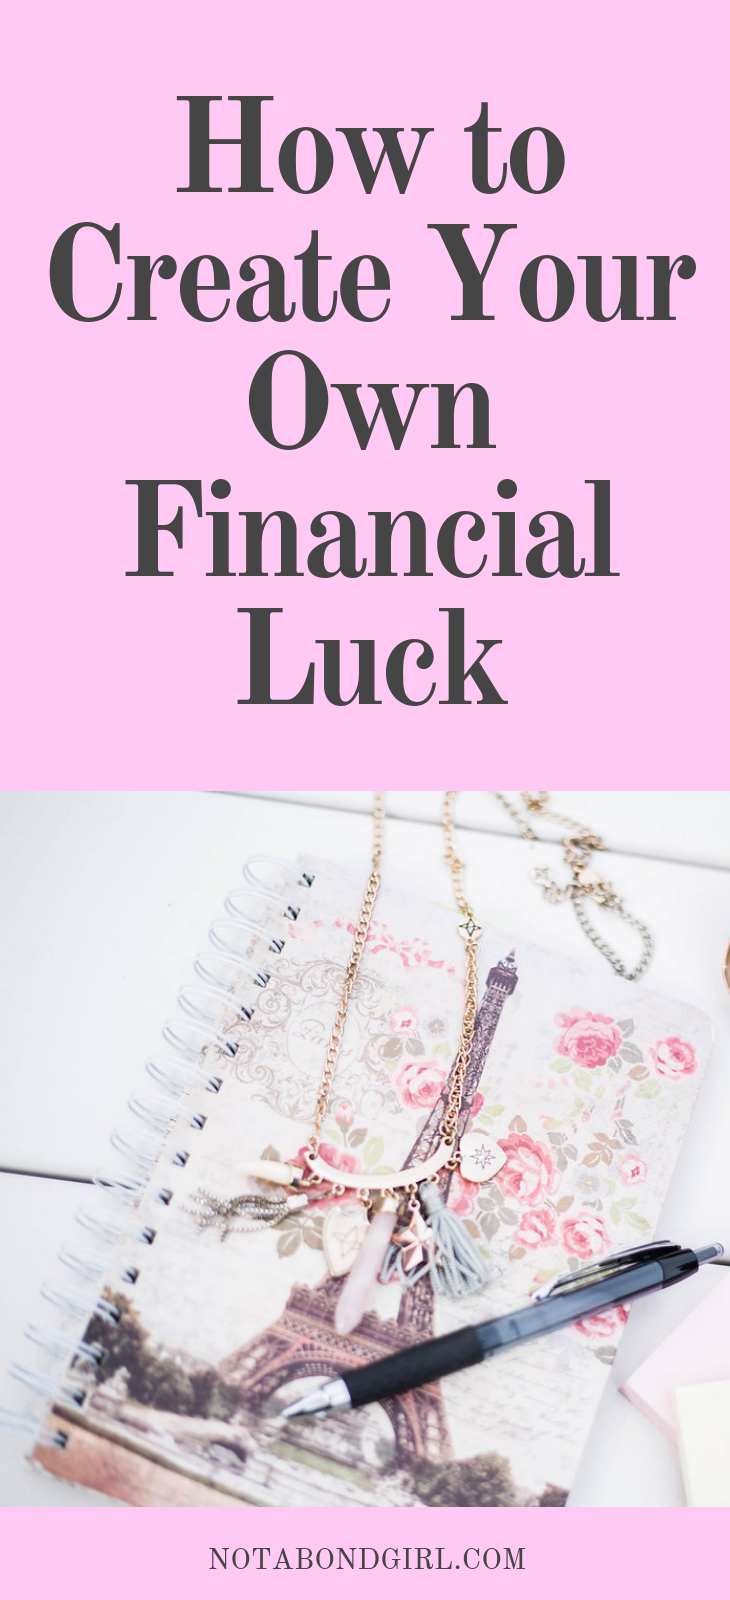 Is it Really Bad Luck? Create Your Own Luck! manifest money, good luck vs bad luck; financial independence retire early #earlyretirement #personalfinance #finance #money #career #worklife #financialplanning #moneysaving #manifest #lawofattraction #inspiration #FIREMovement #wealth